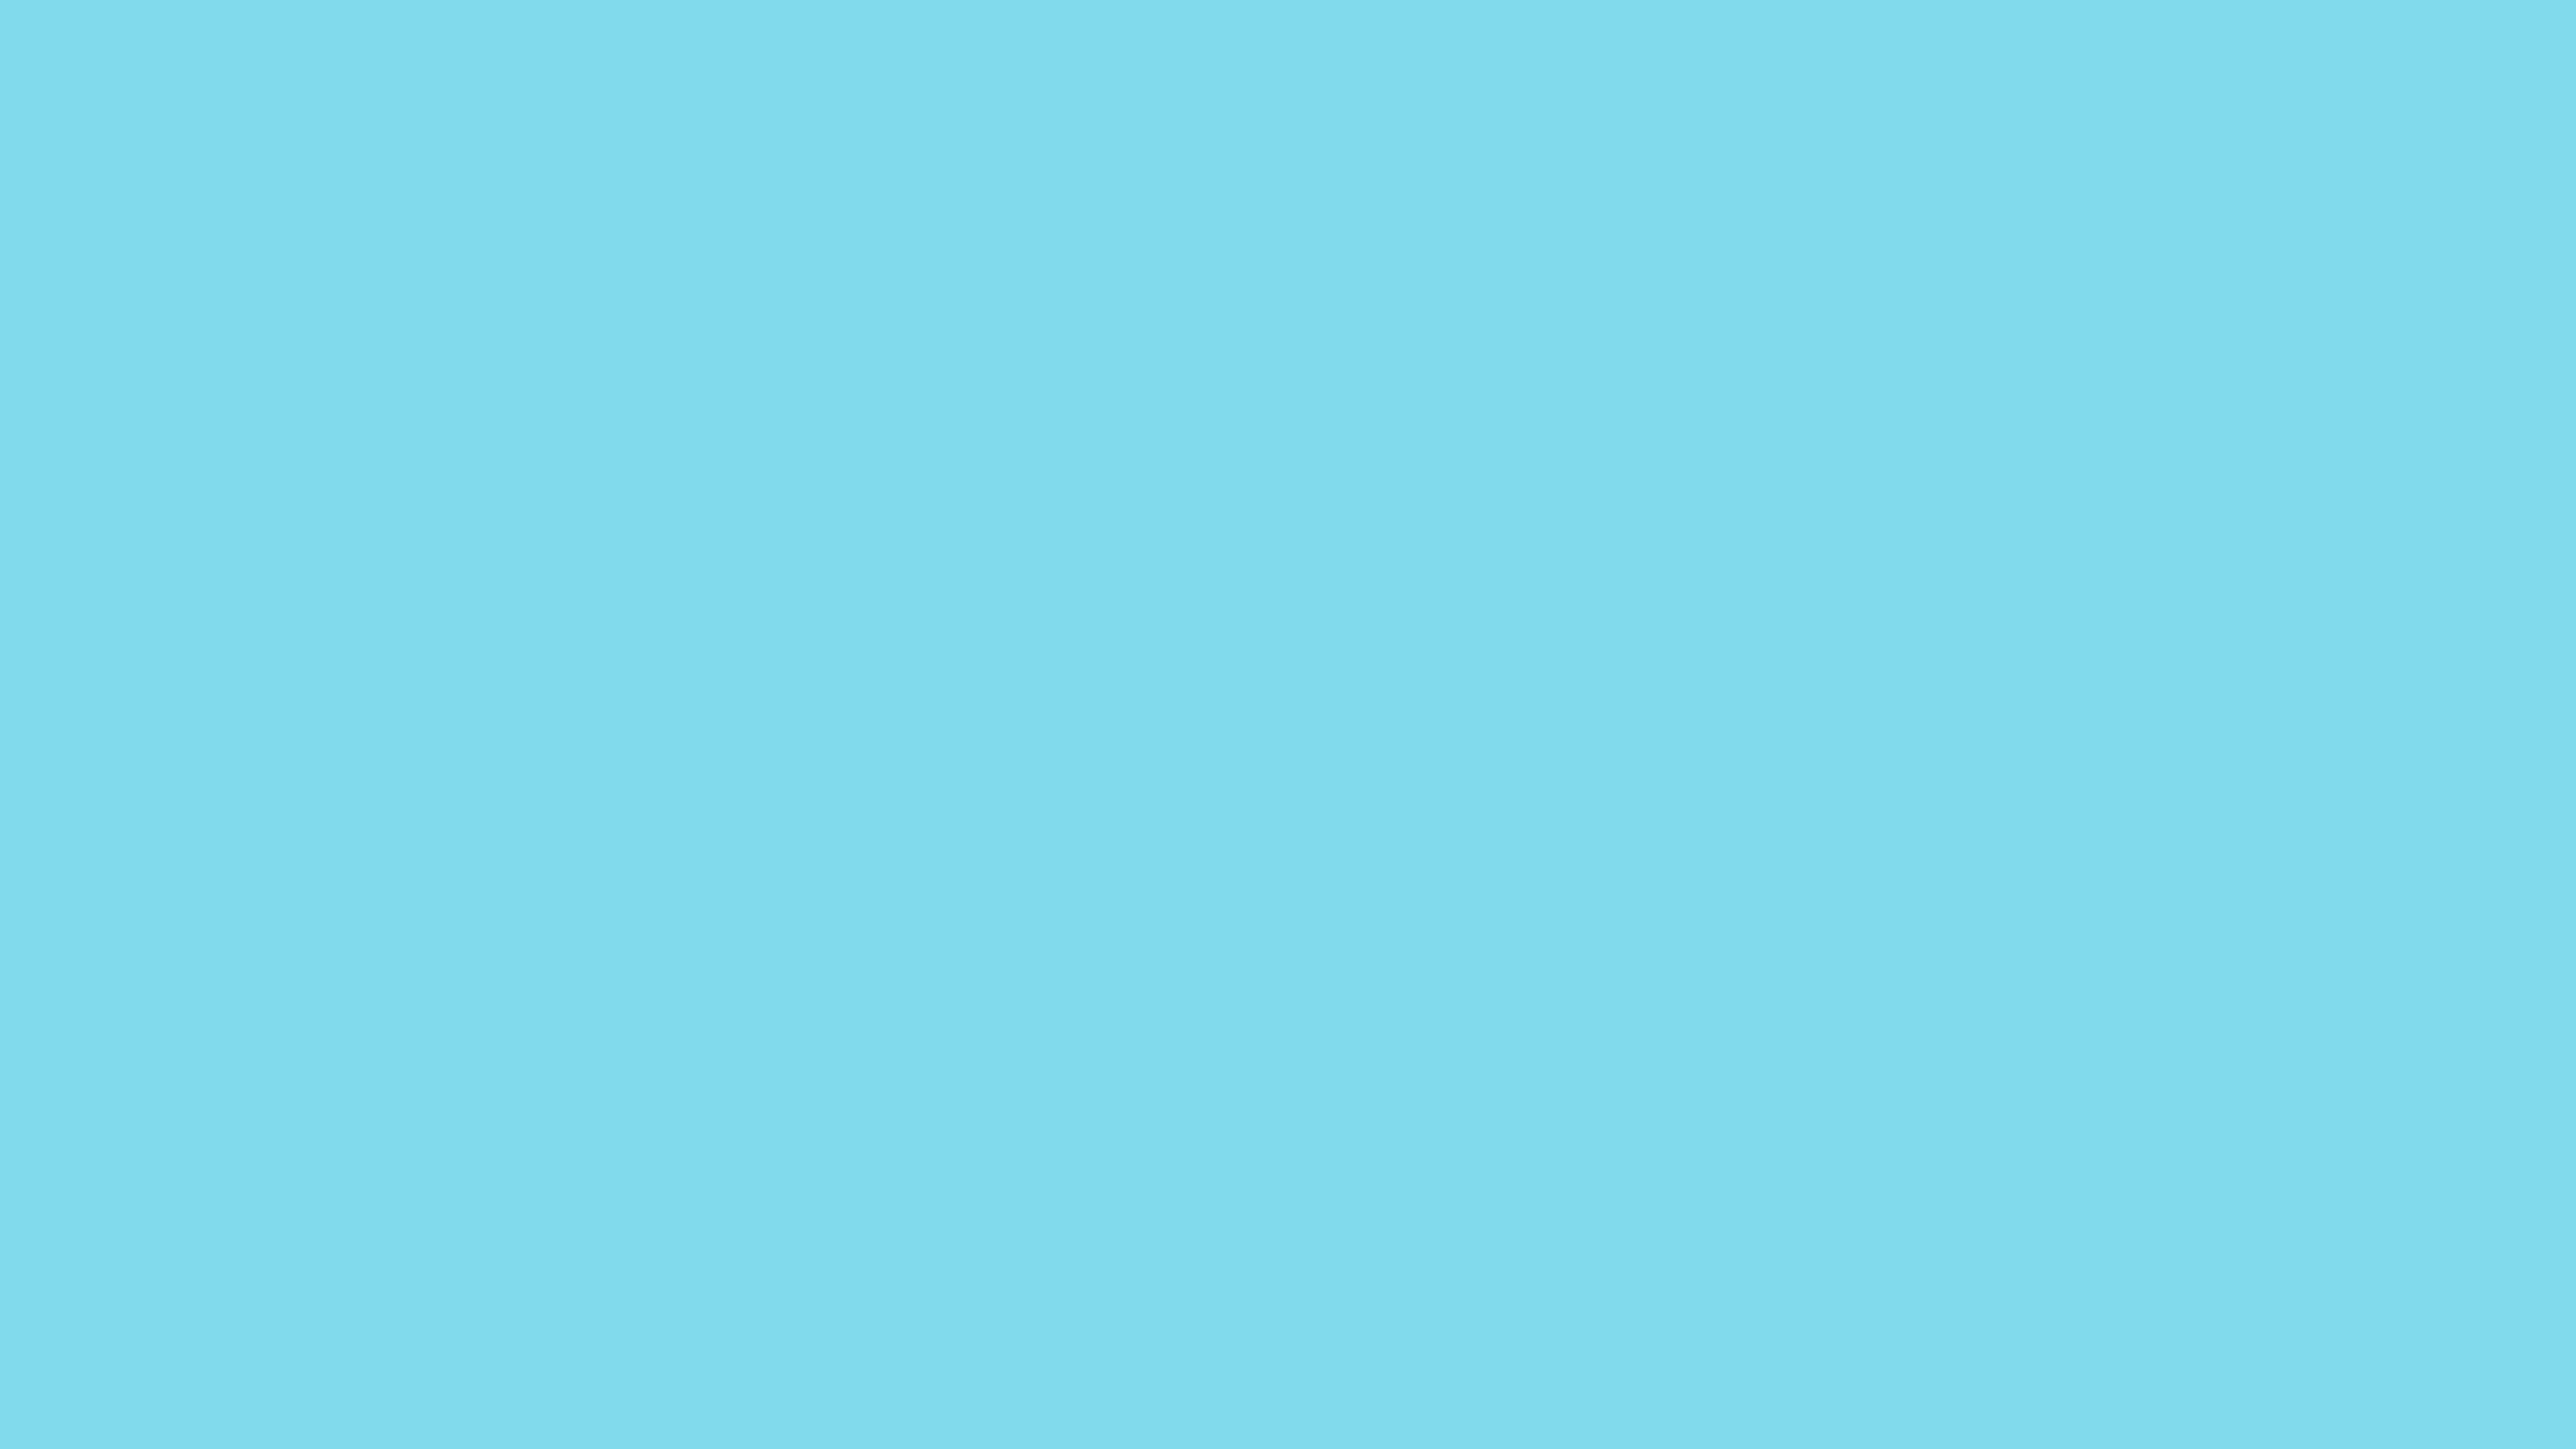 3840x2160 Medium Sky Blue Solid Color Background